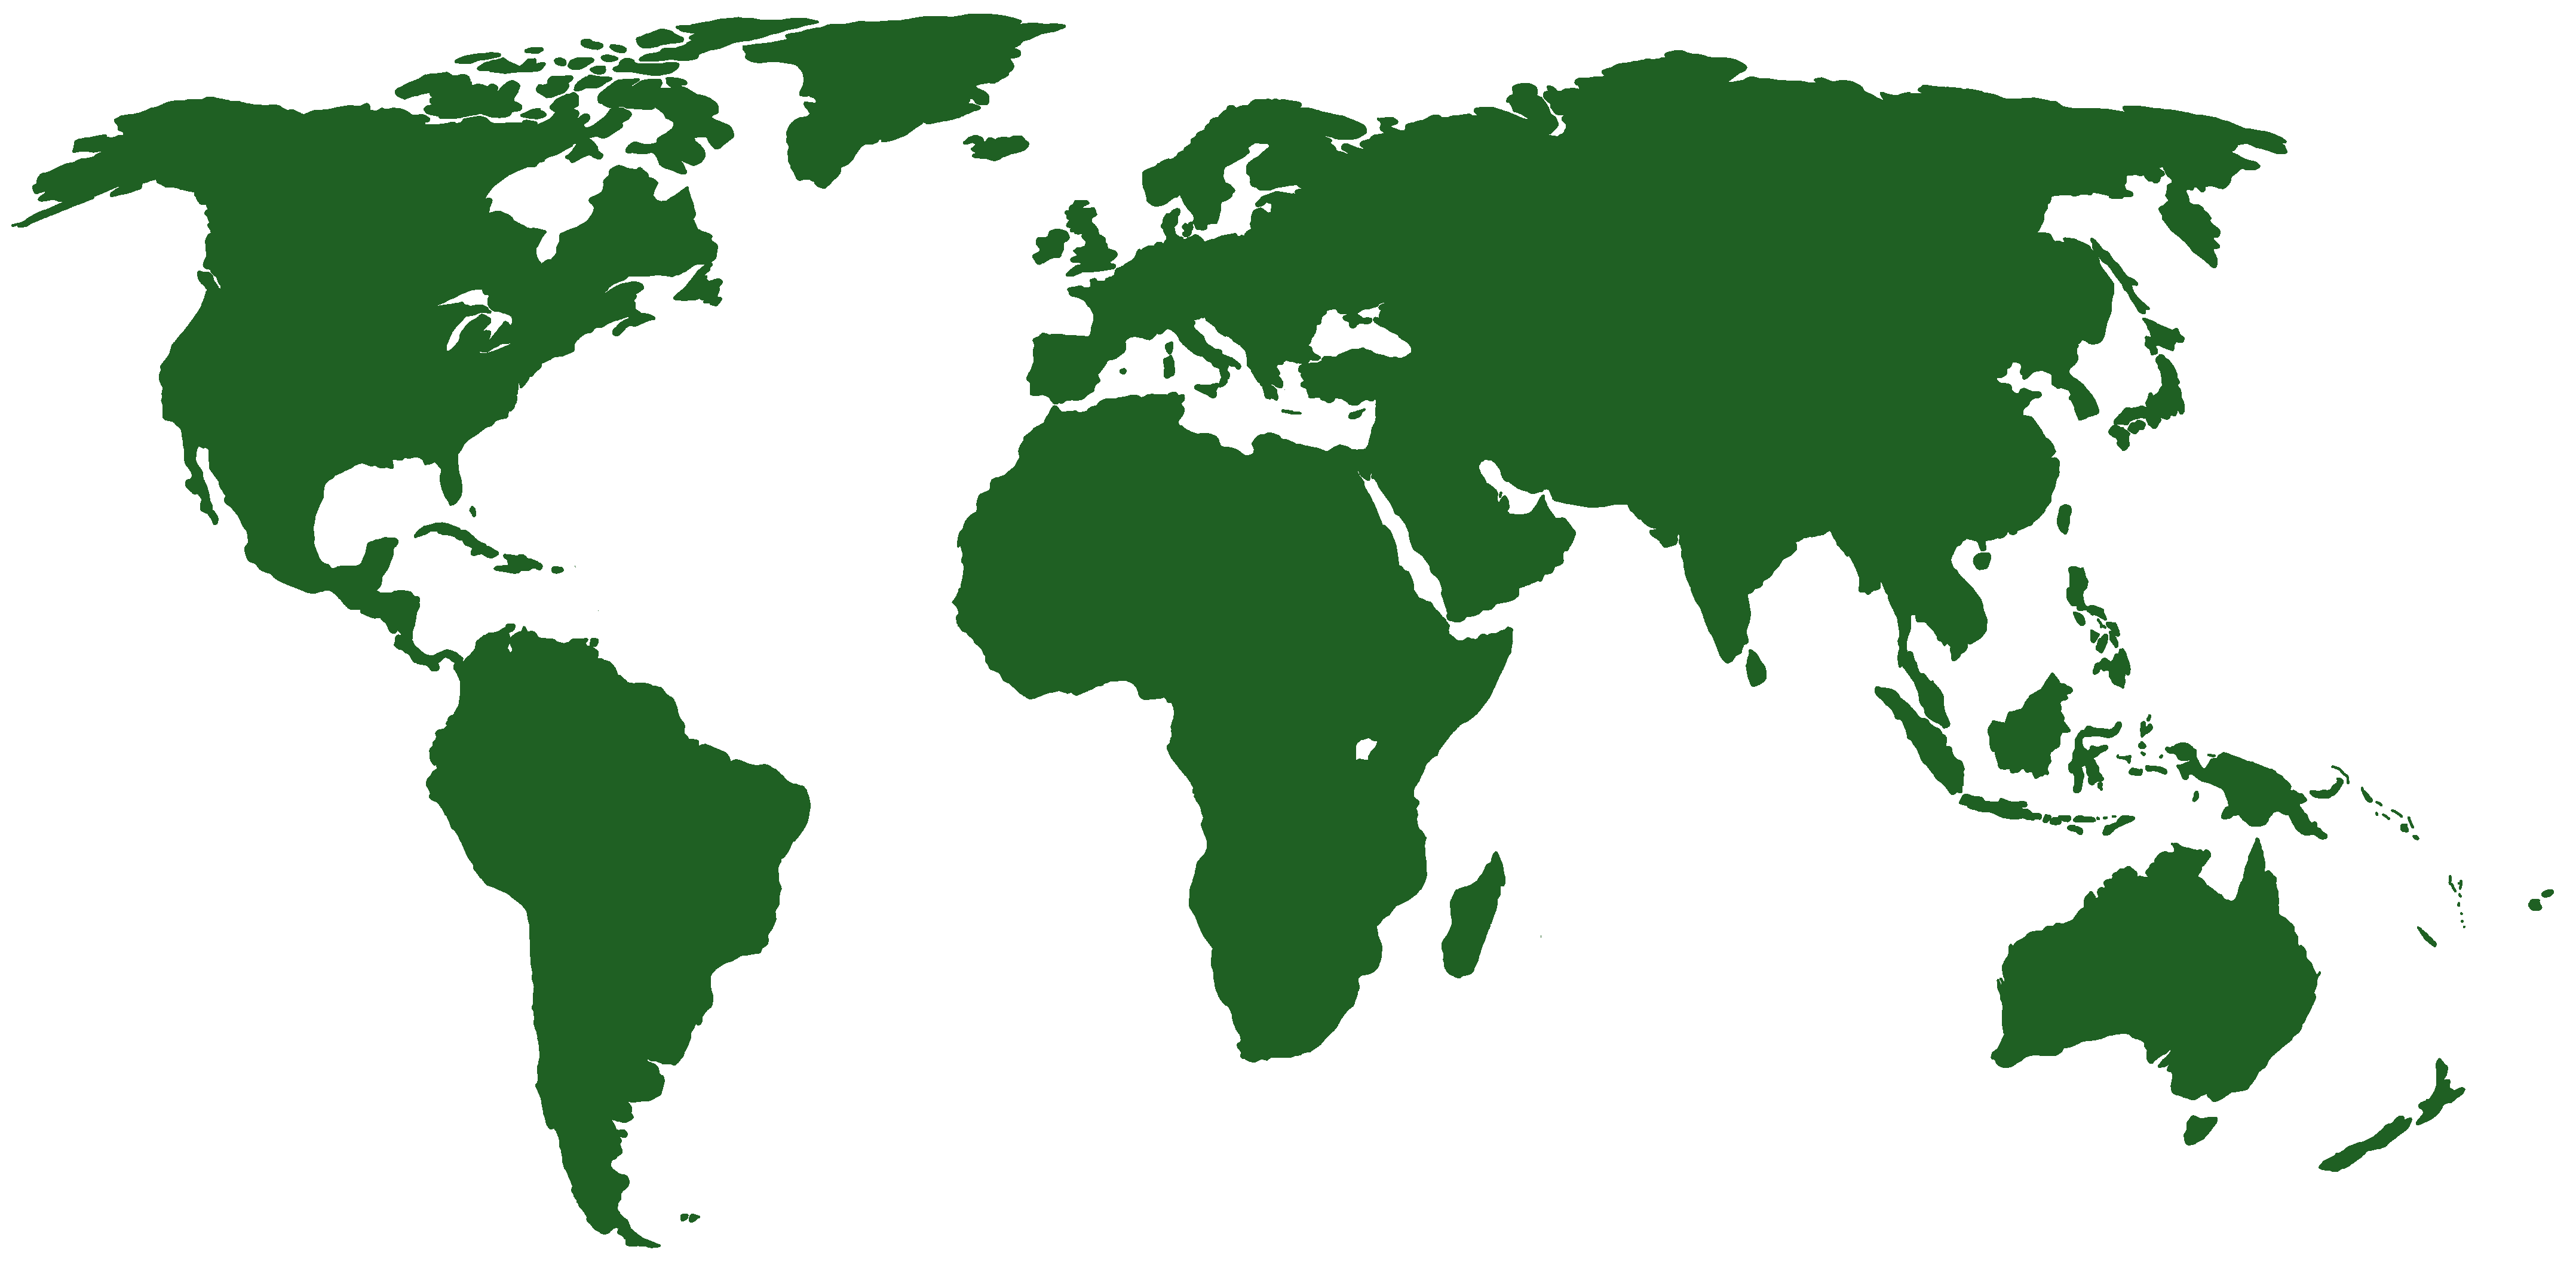 world map PNG18